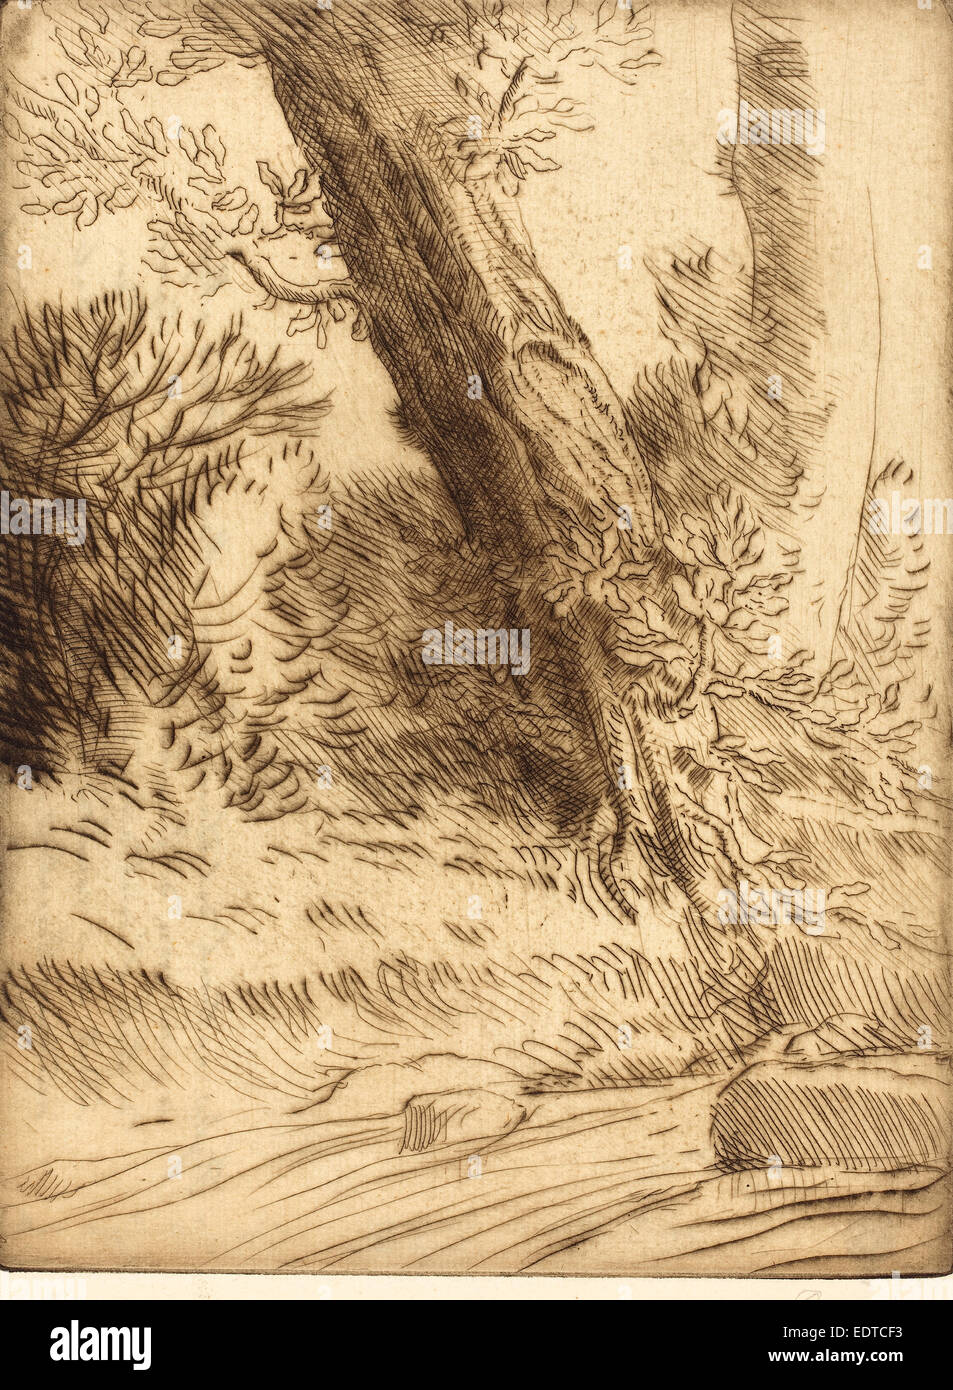 Alphonse Legros, Edge of a Brook (Bord de ruisseau), French, 1837 - 1911, drypoint in brown - Stock Image